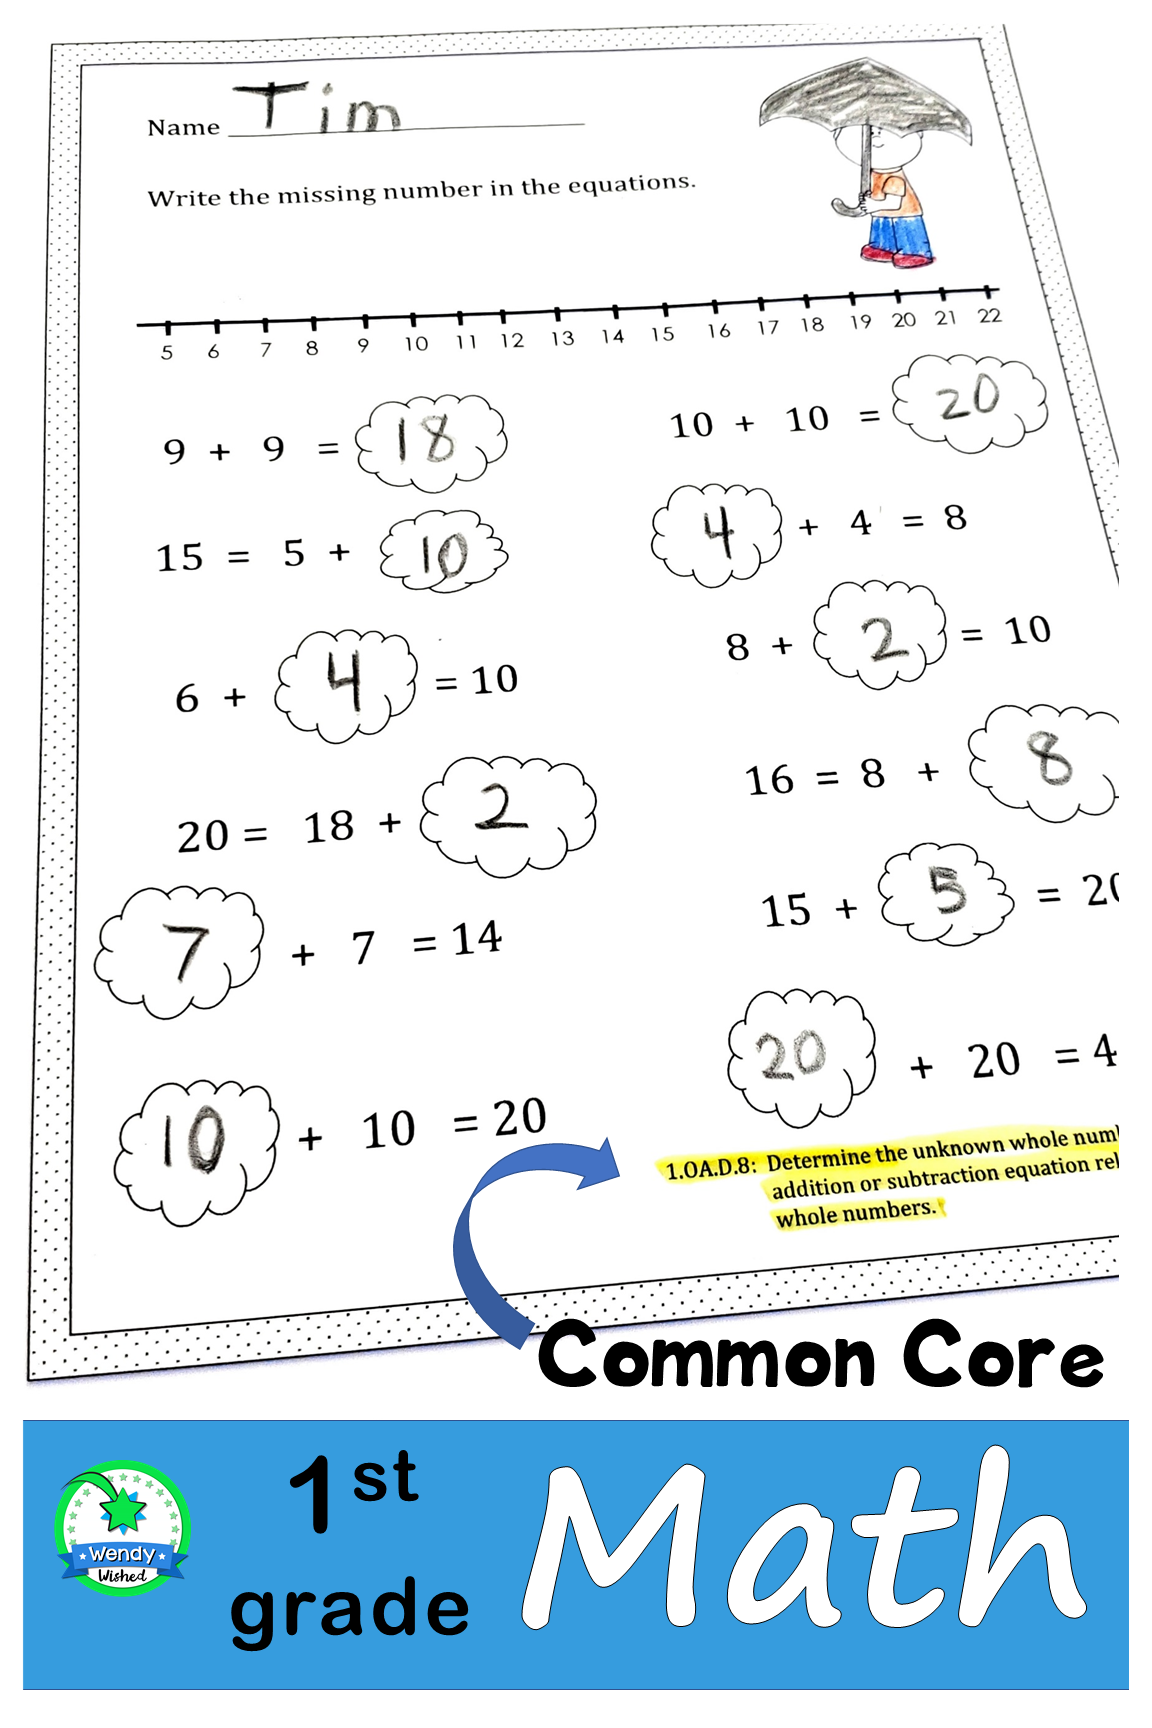 Need Extra Math Practice Pages For Your 1st Grade Students